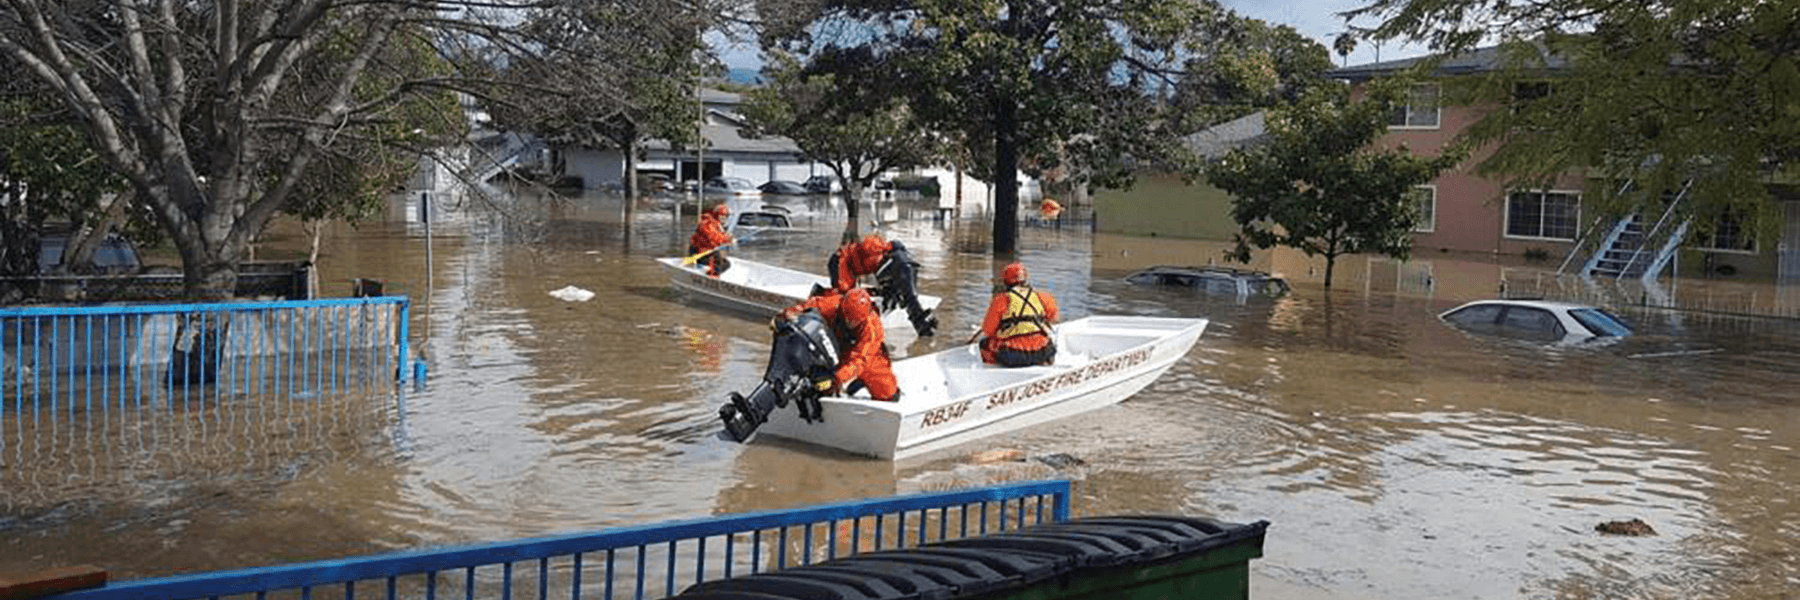 Rescue boats in a flooded neighborhood. Link to article